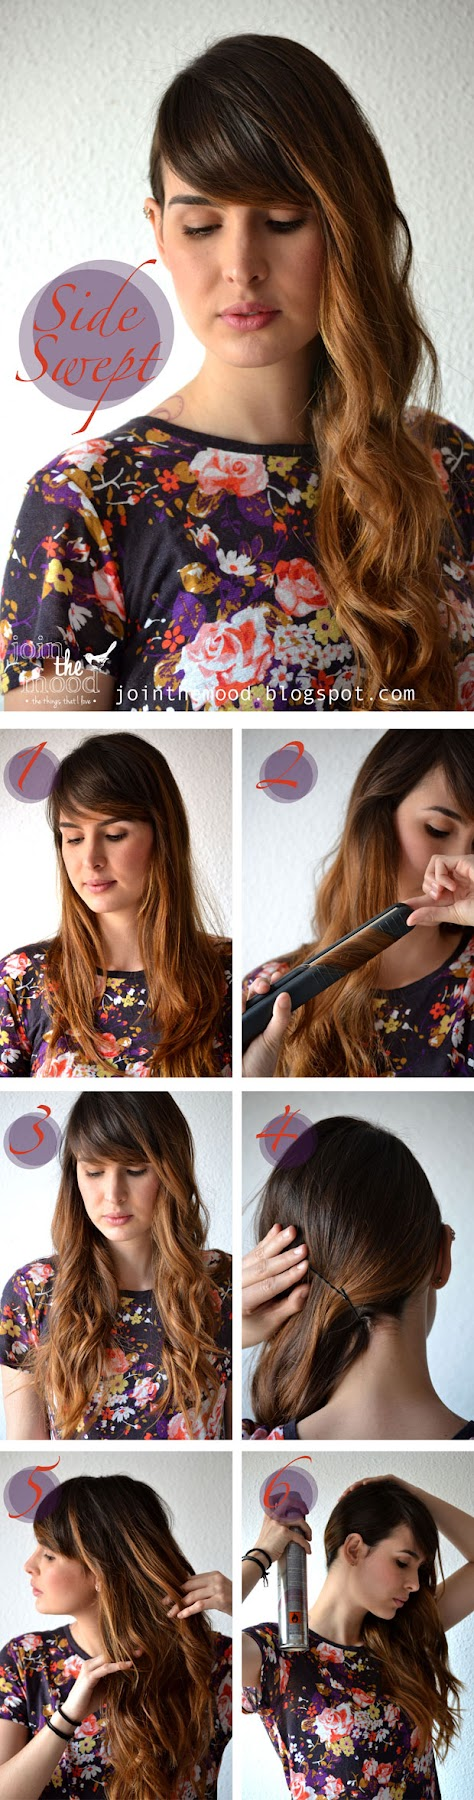 Make a Side Swept Hairstyle